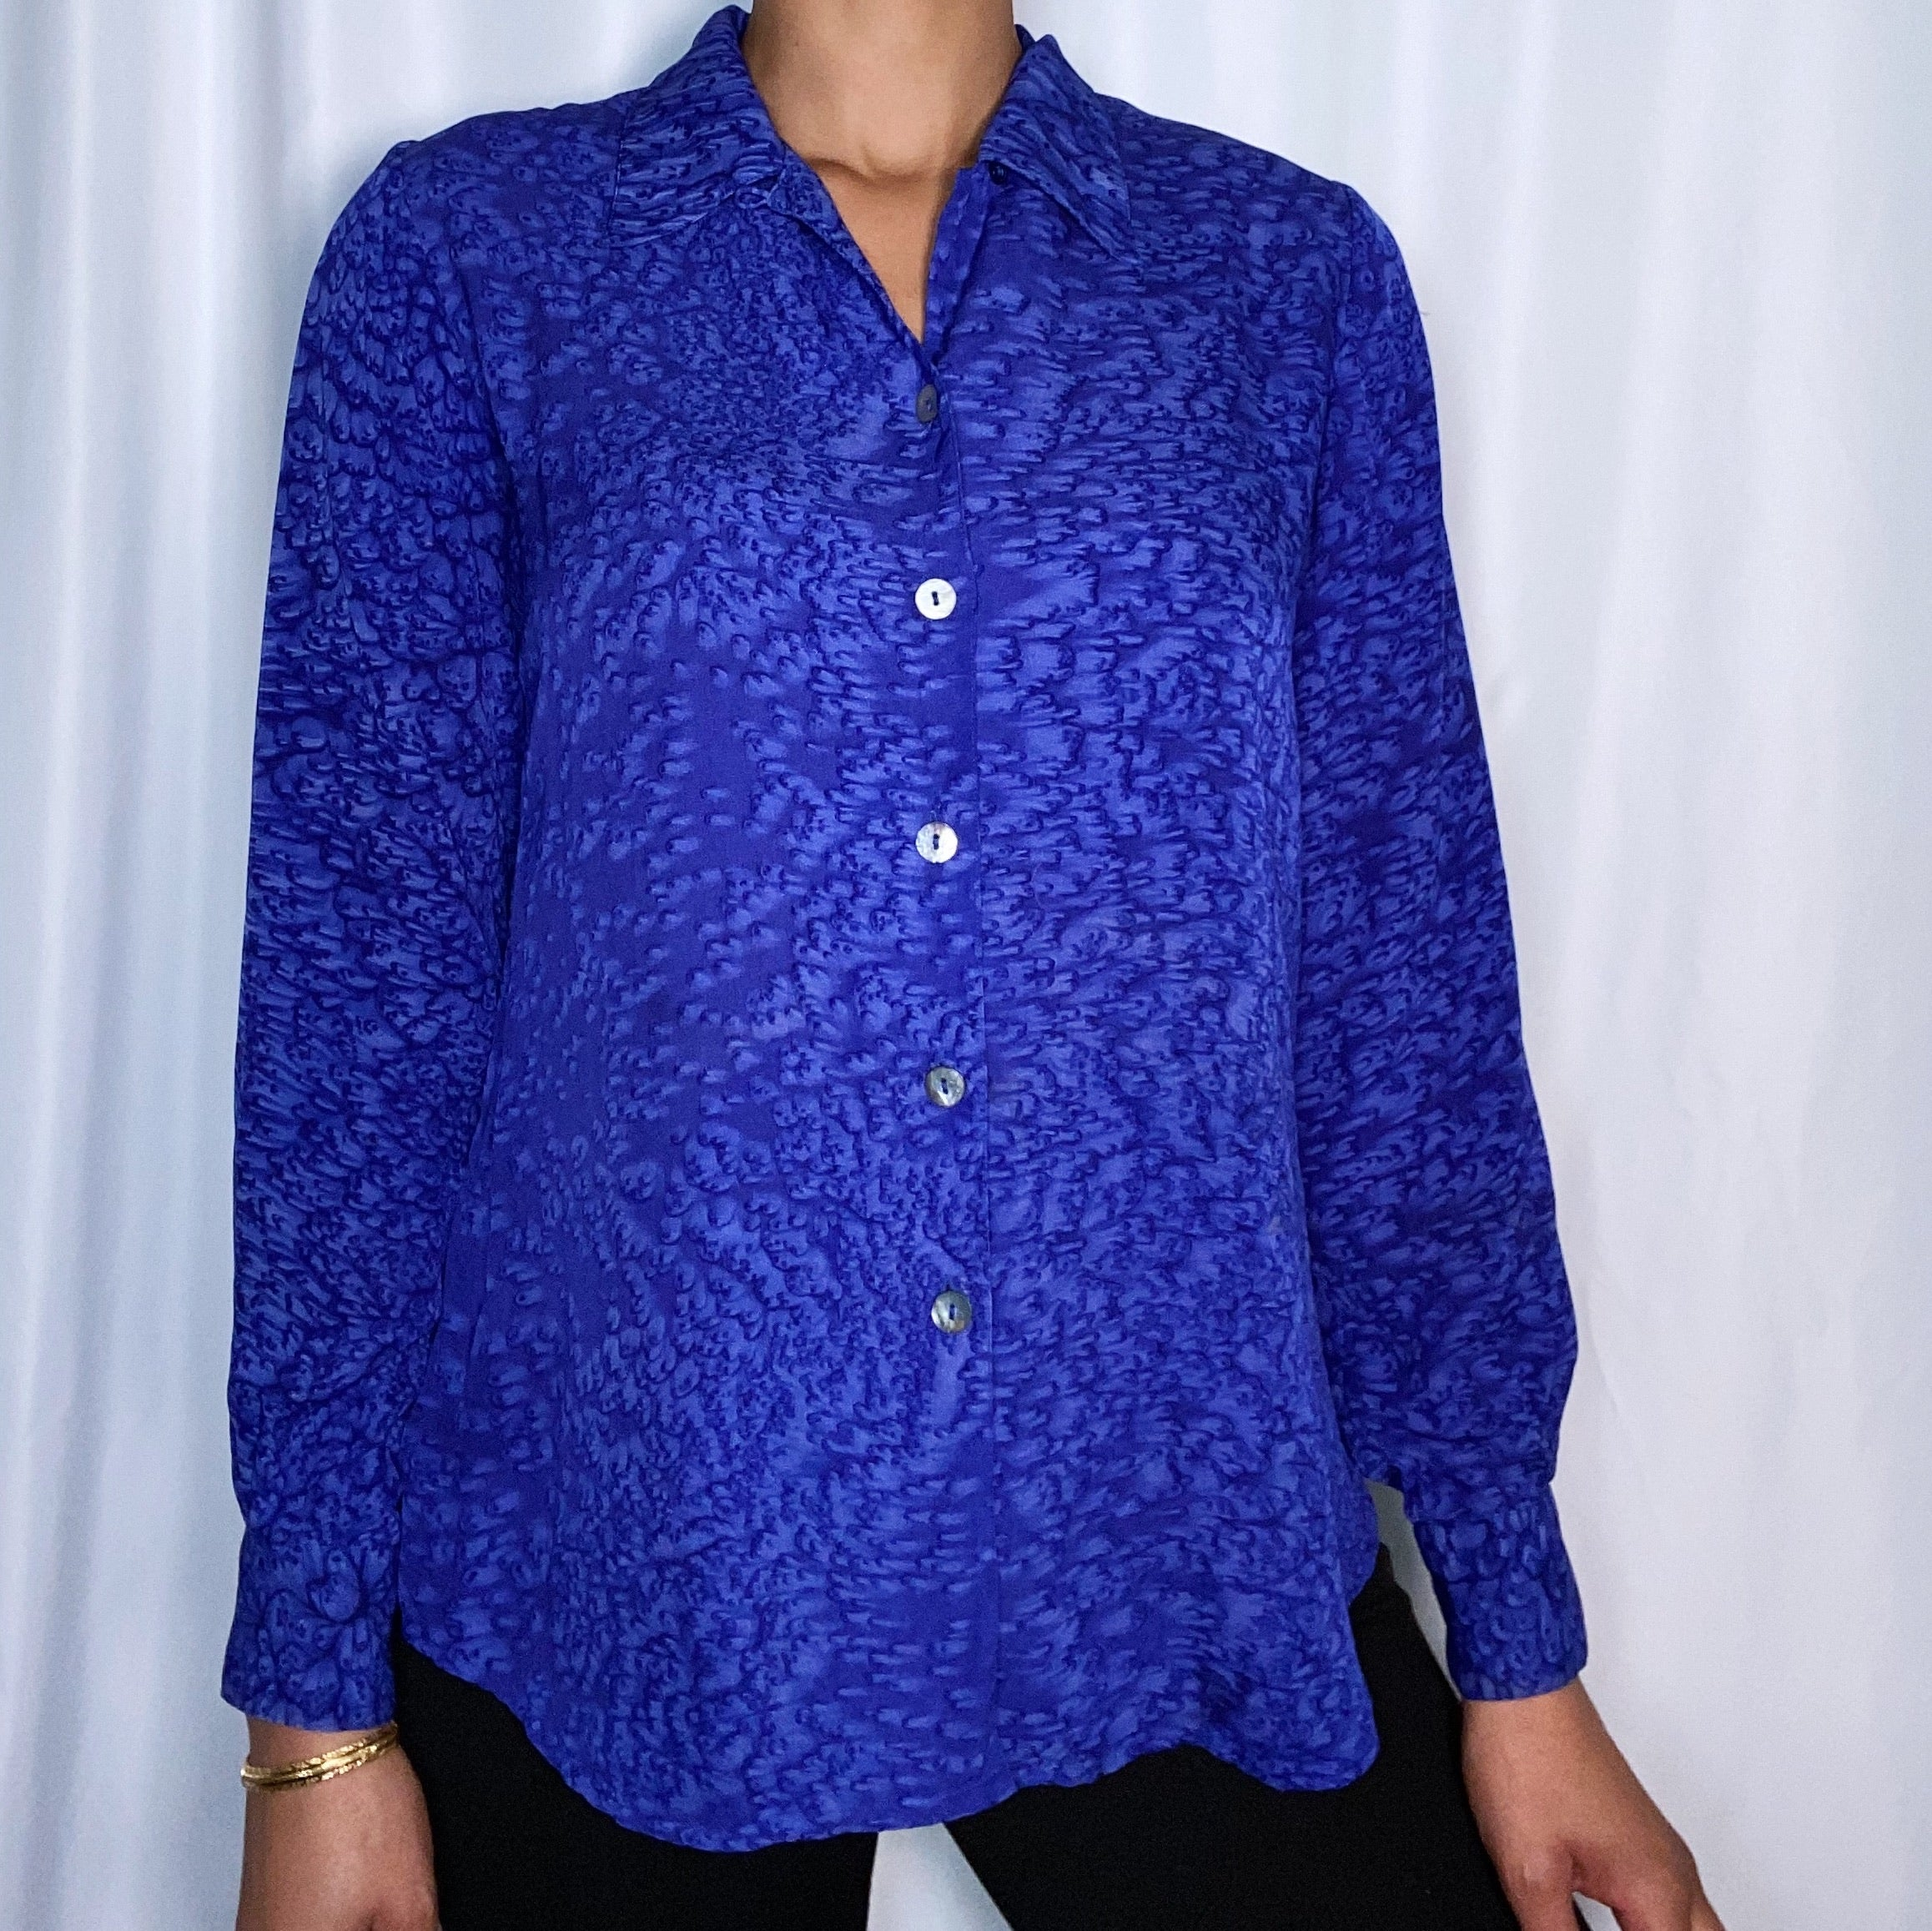 Vintage Tess Silk Top (size small)